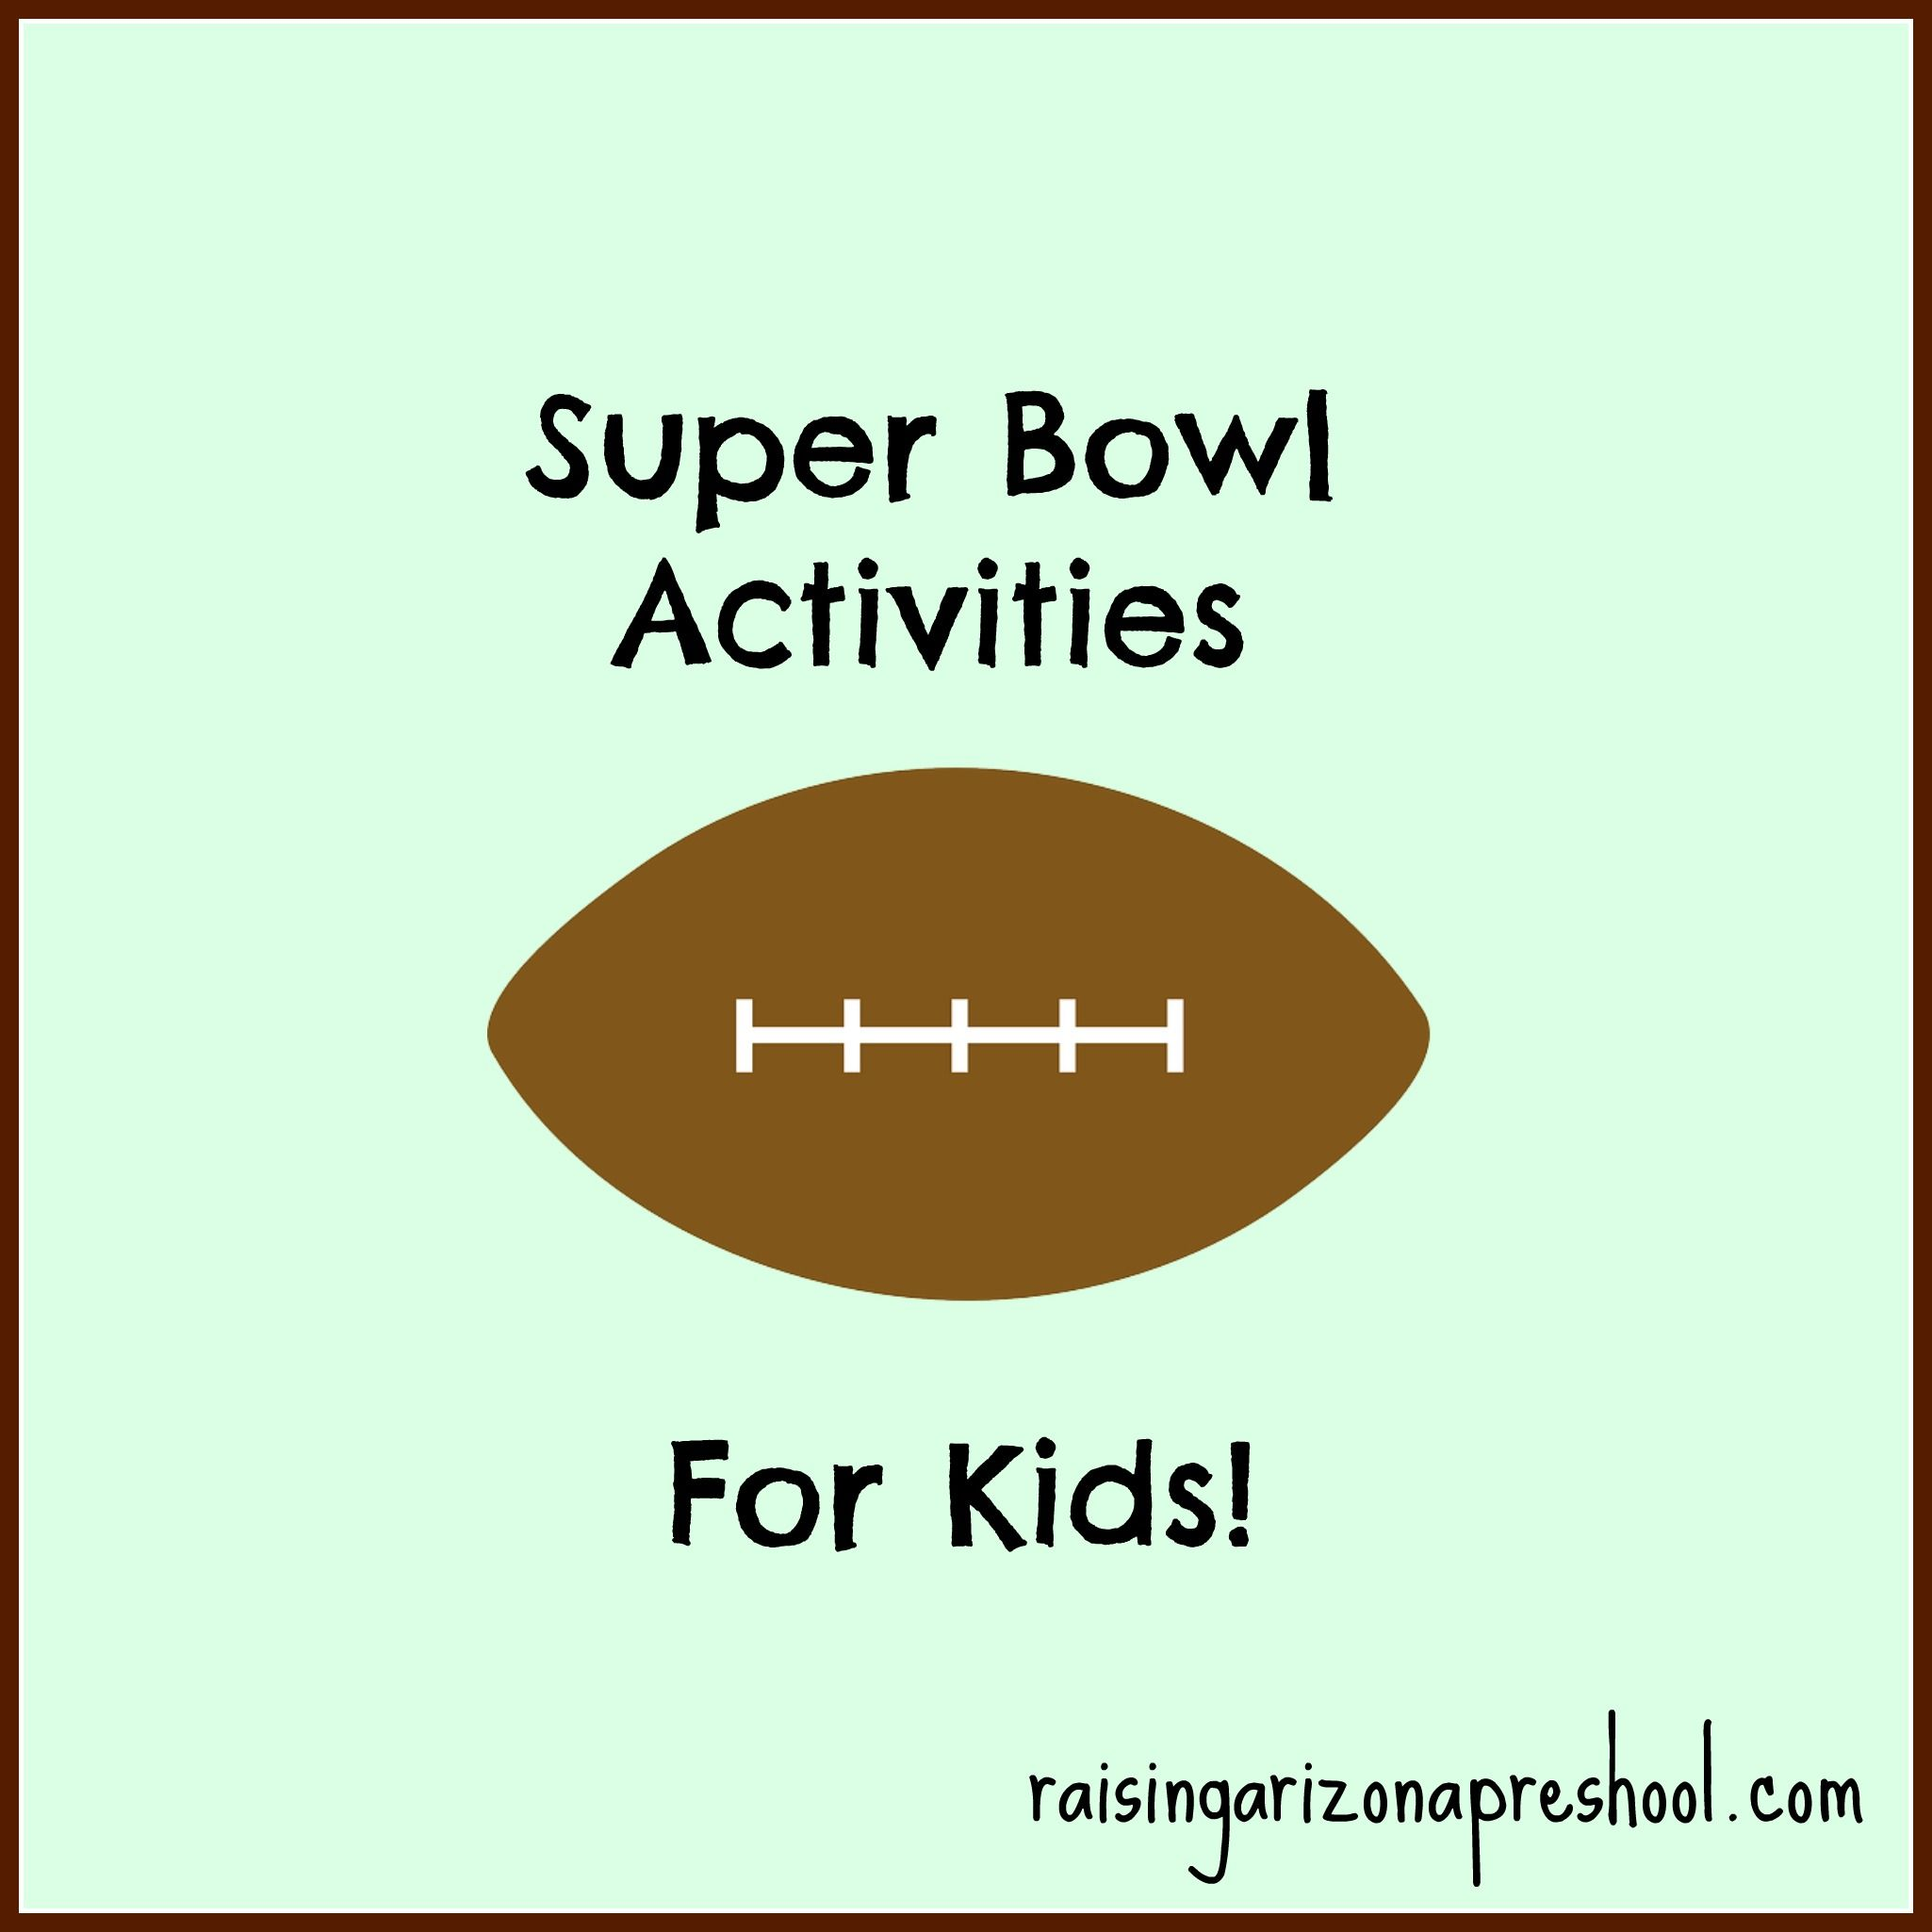 Kids Super Bowl Activities With Images